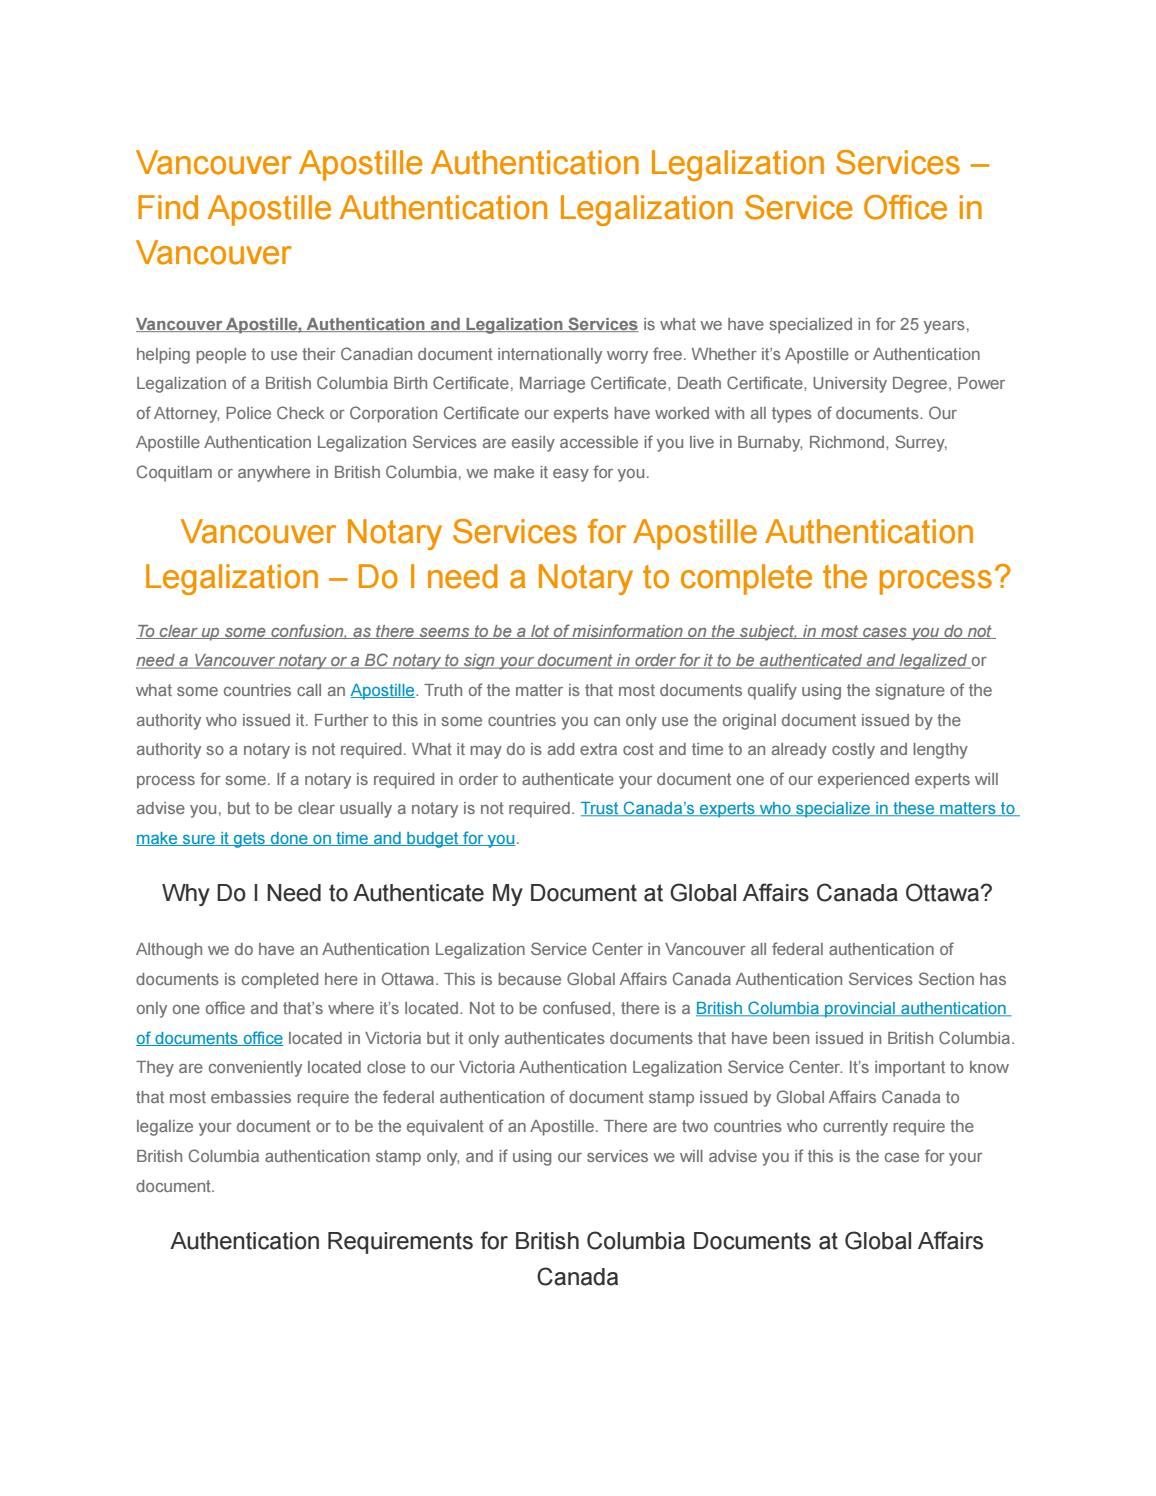 Vancouver apostille authentication legalization service1 by vancouver apostille authentication legalization service1 by authentication legalization services canada issuu aiddatafo Gallery